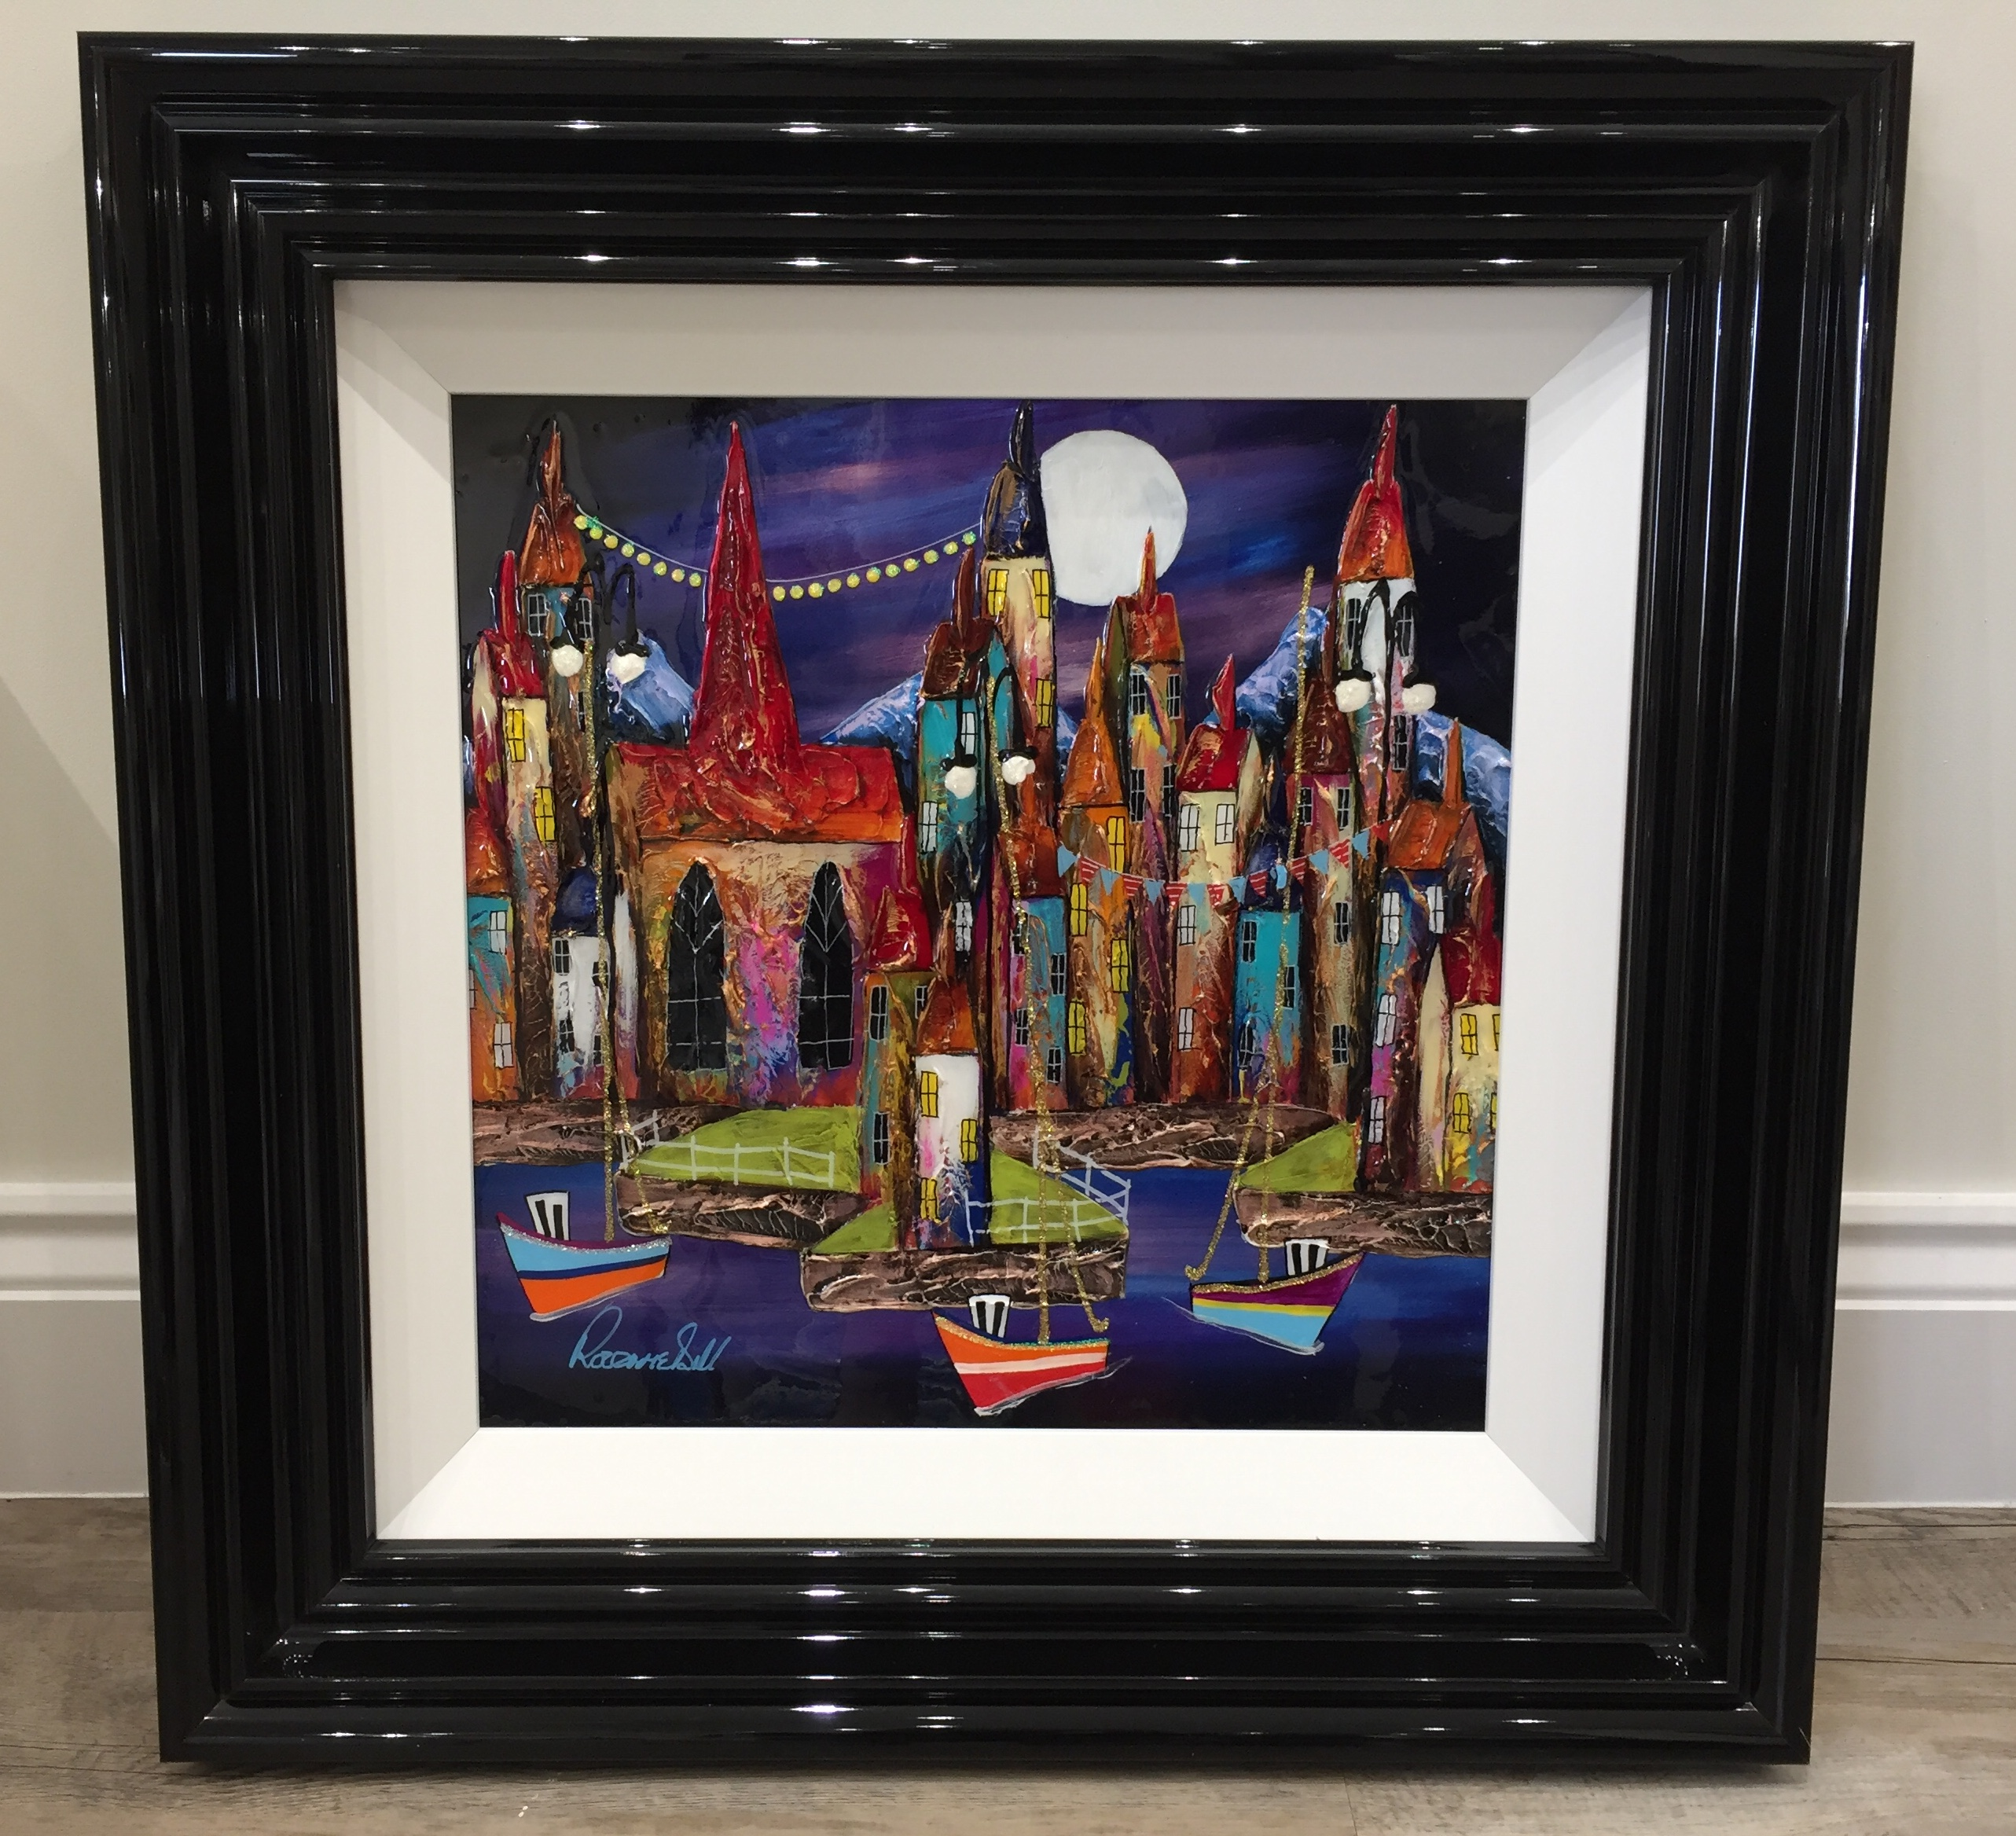 Night Harbour 16 x 16 by Rozanne Bell